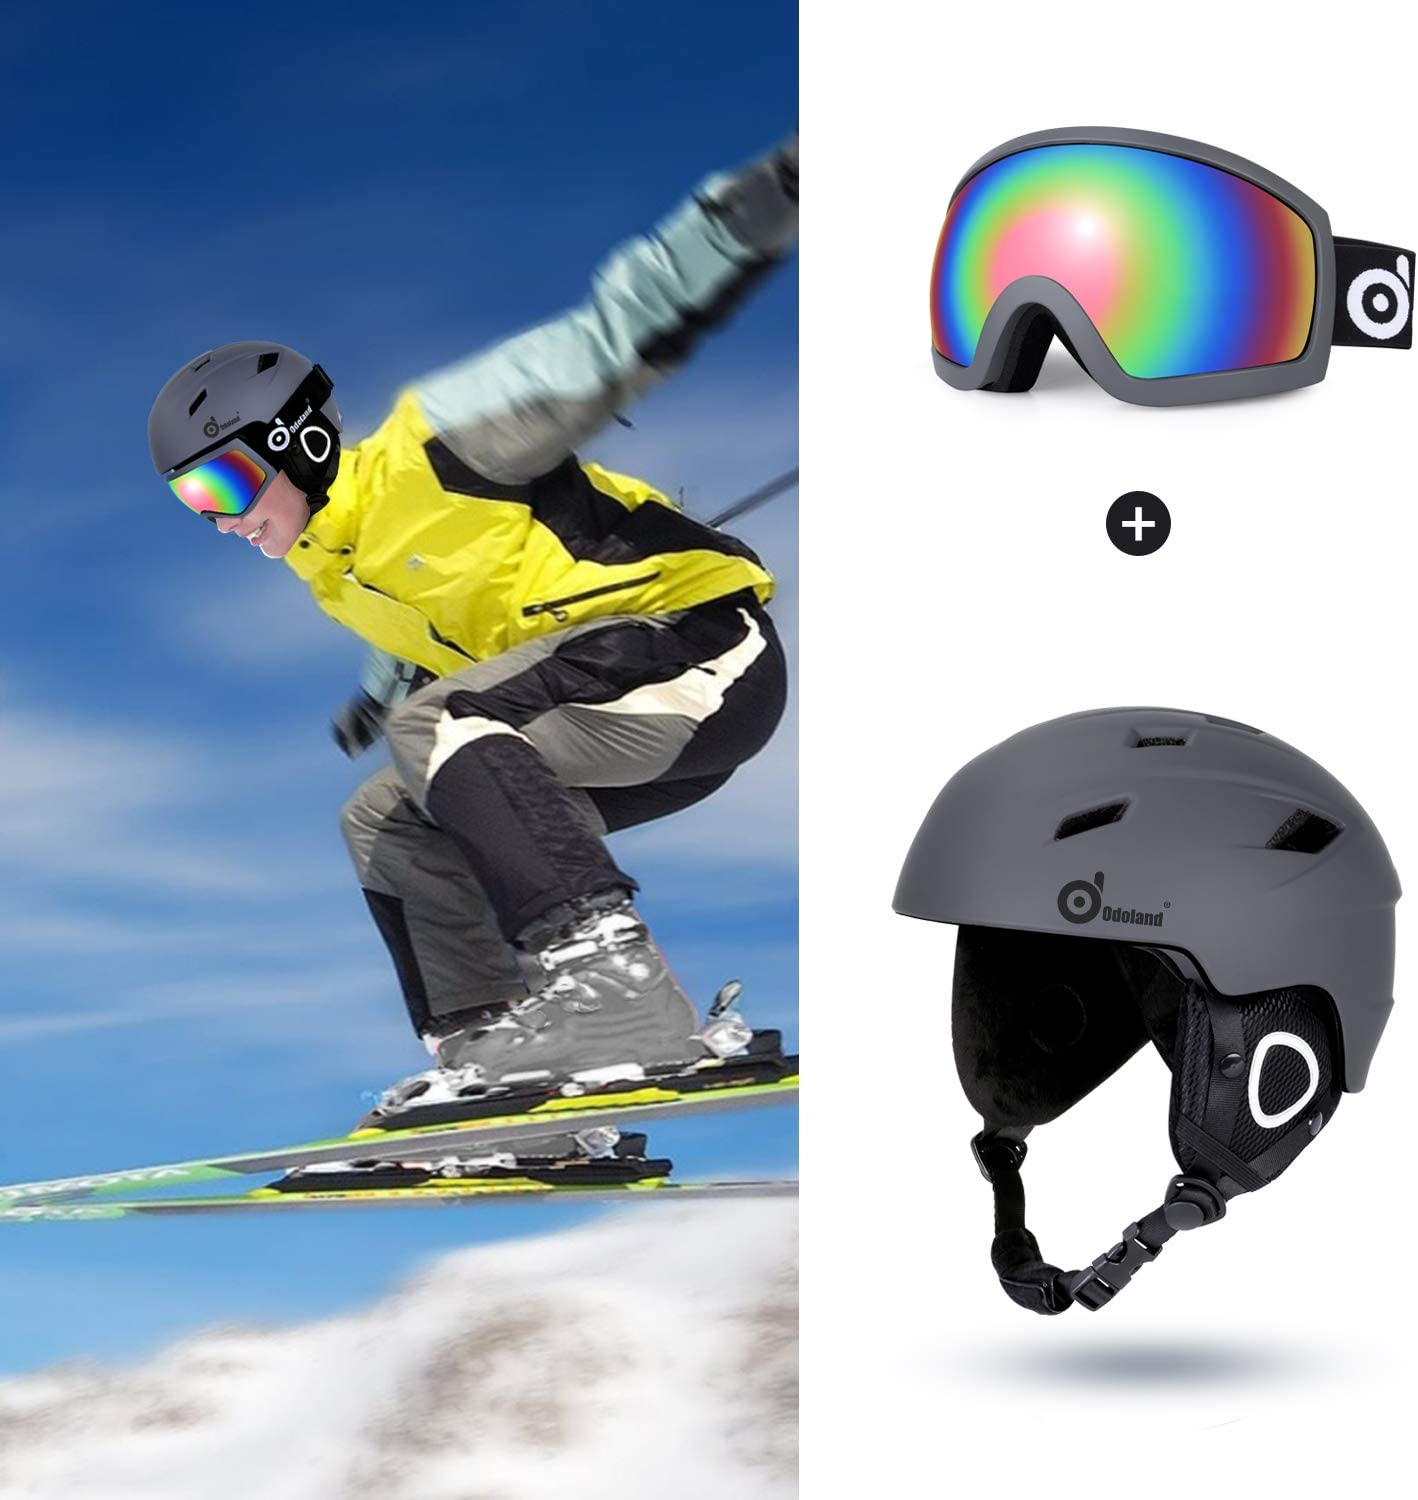 Sports Helmet and Protective Glasses Snowmobile,Gtay,XL Motorcycle Cycling Odoland Snow Ski Helmet and Goggles Set for Kids and Adult Snowboarding Shockproof//Windproof Protective Gear for Skiing